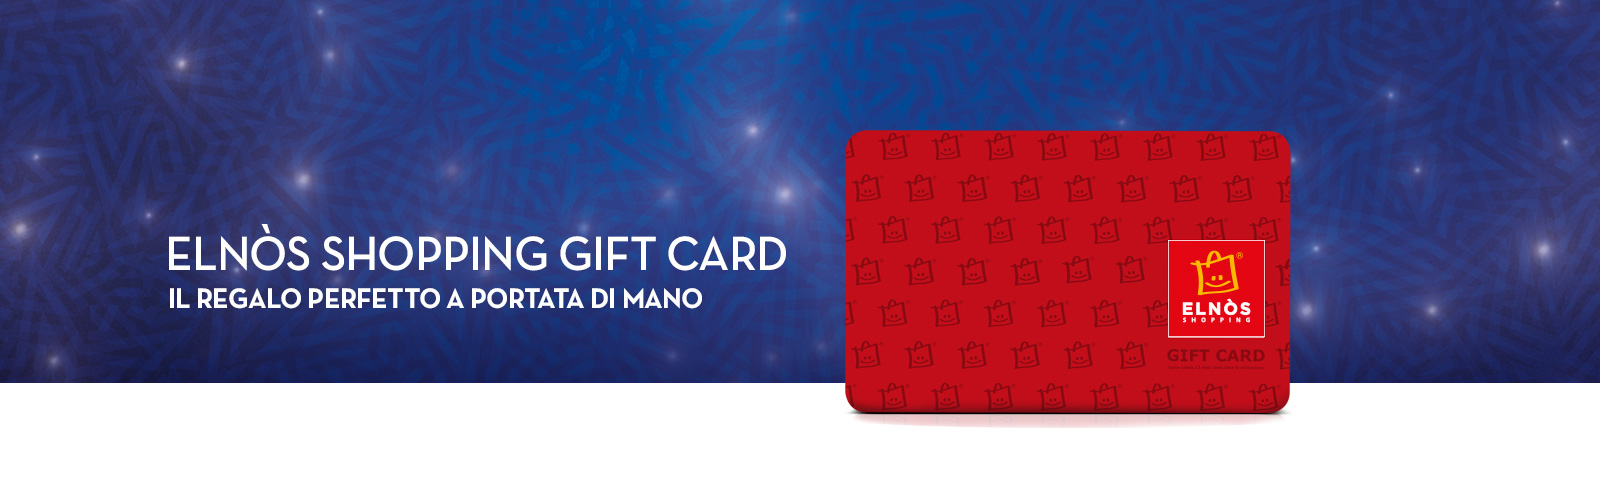 ELNÒS Shopping Gift Card Madonna